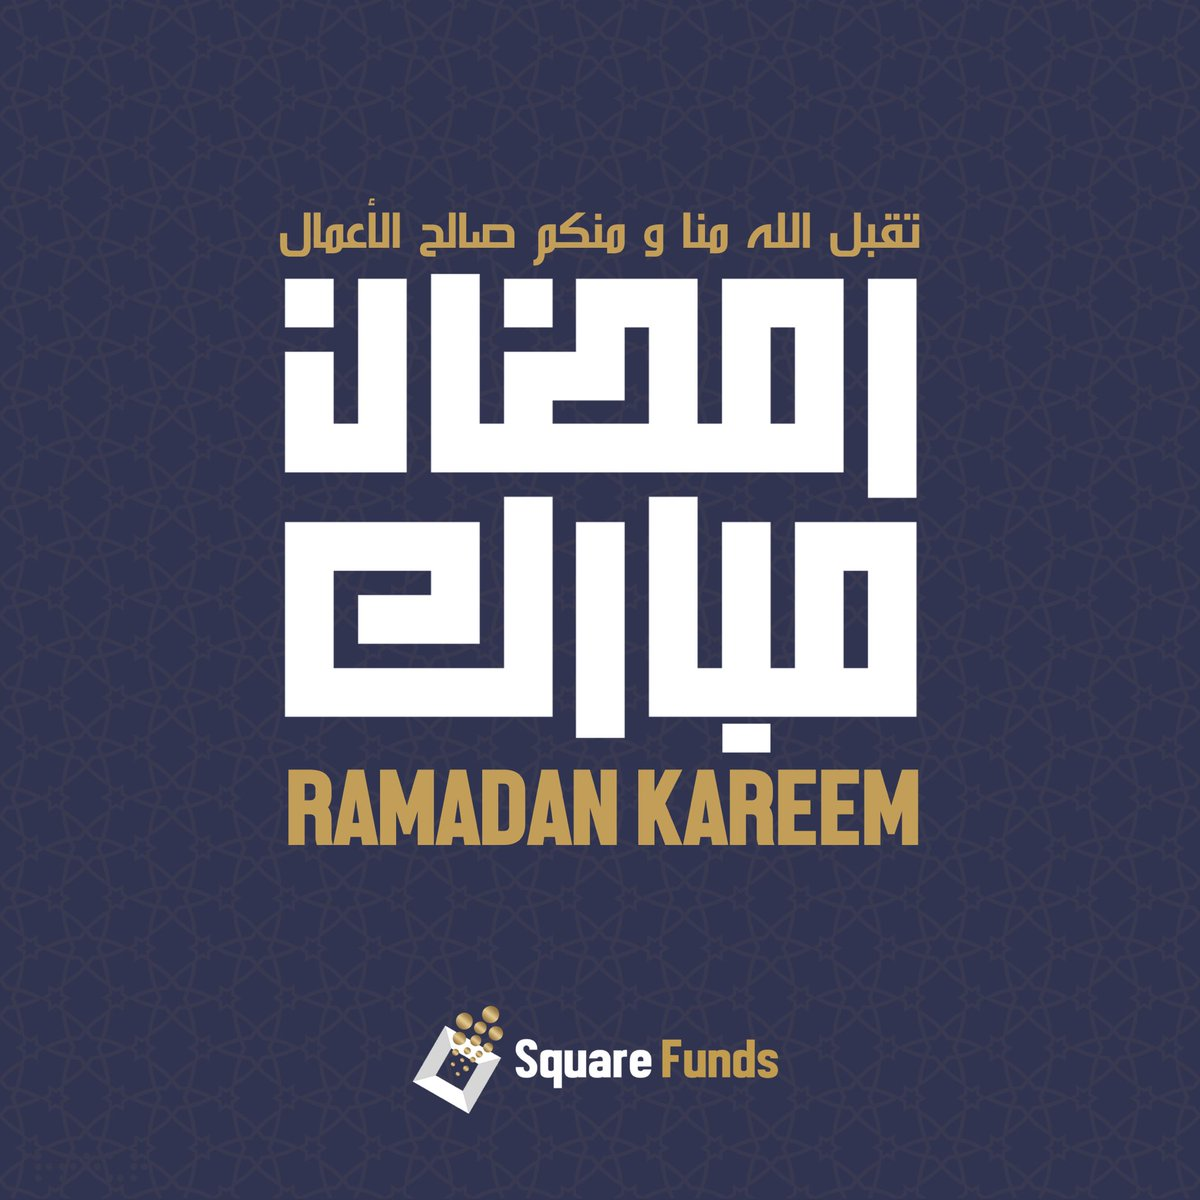 May you all have a blessed Ramadan 🌙 #Bahrain #SquareFunds https://t.co/GATxUA77B2